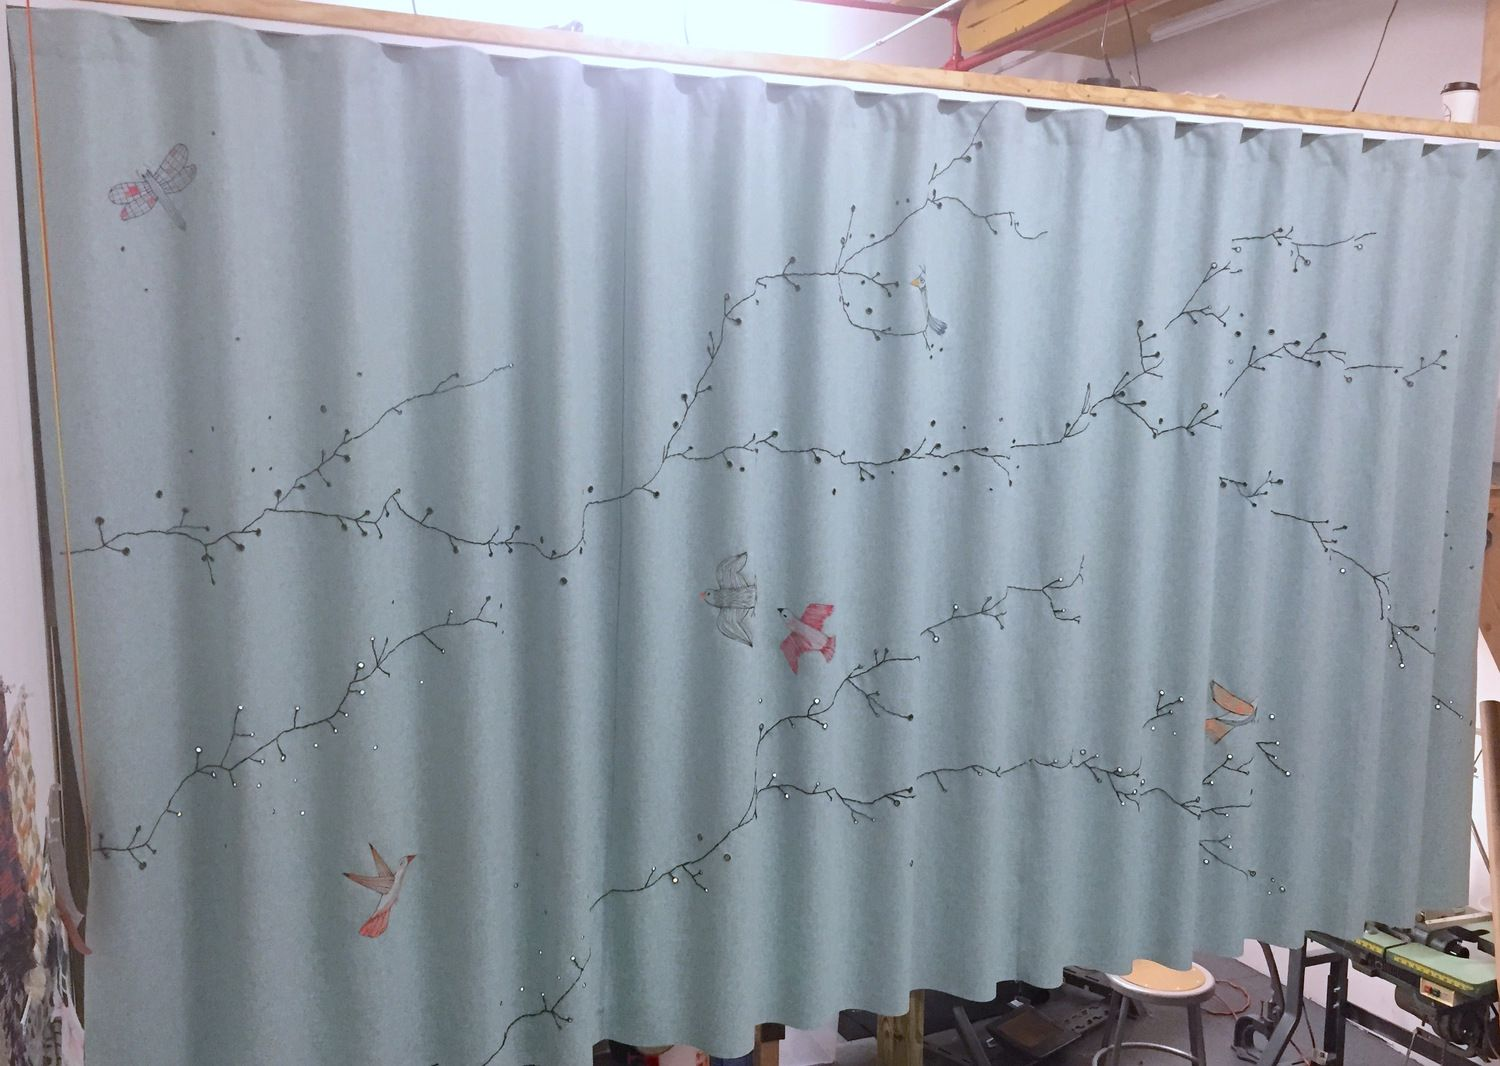 Elodie Blanchard Curtain  Grommet And Embroidery With Birds